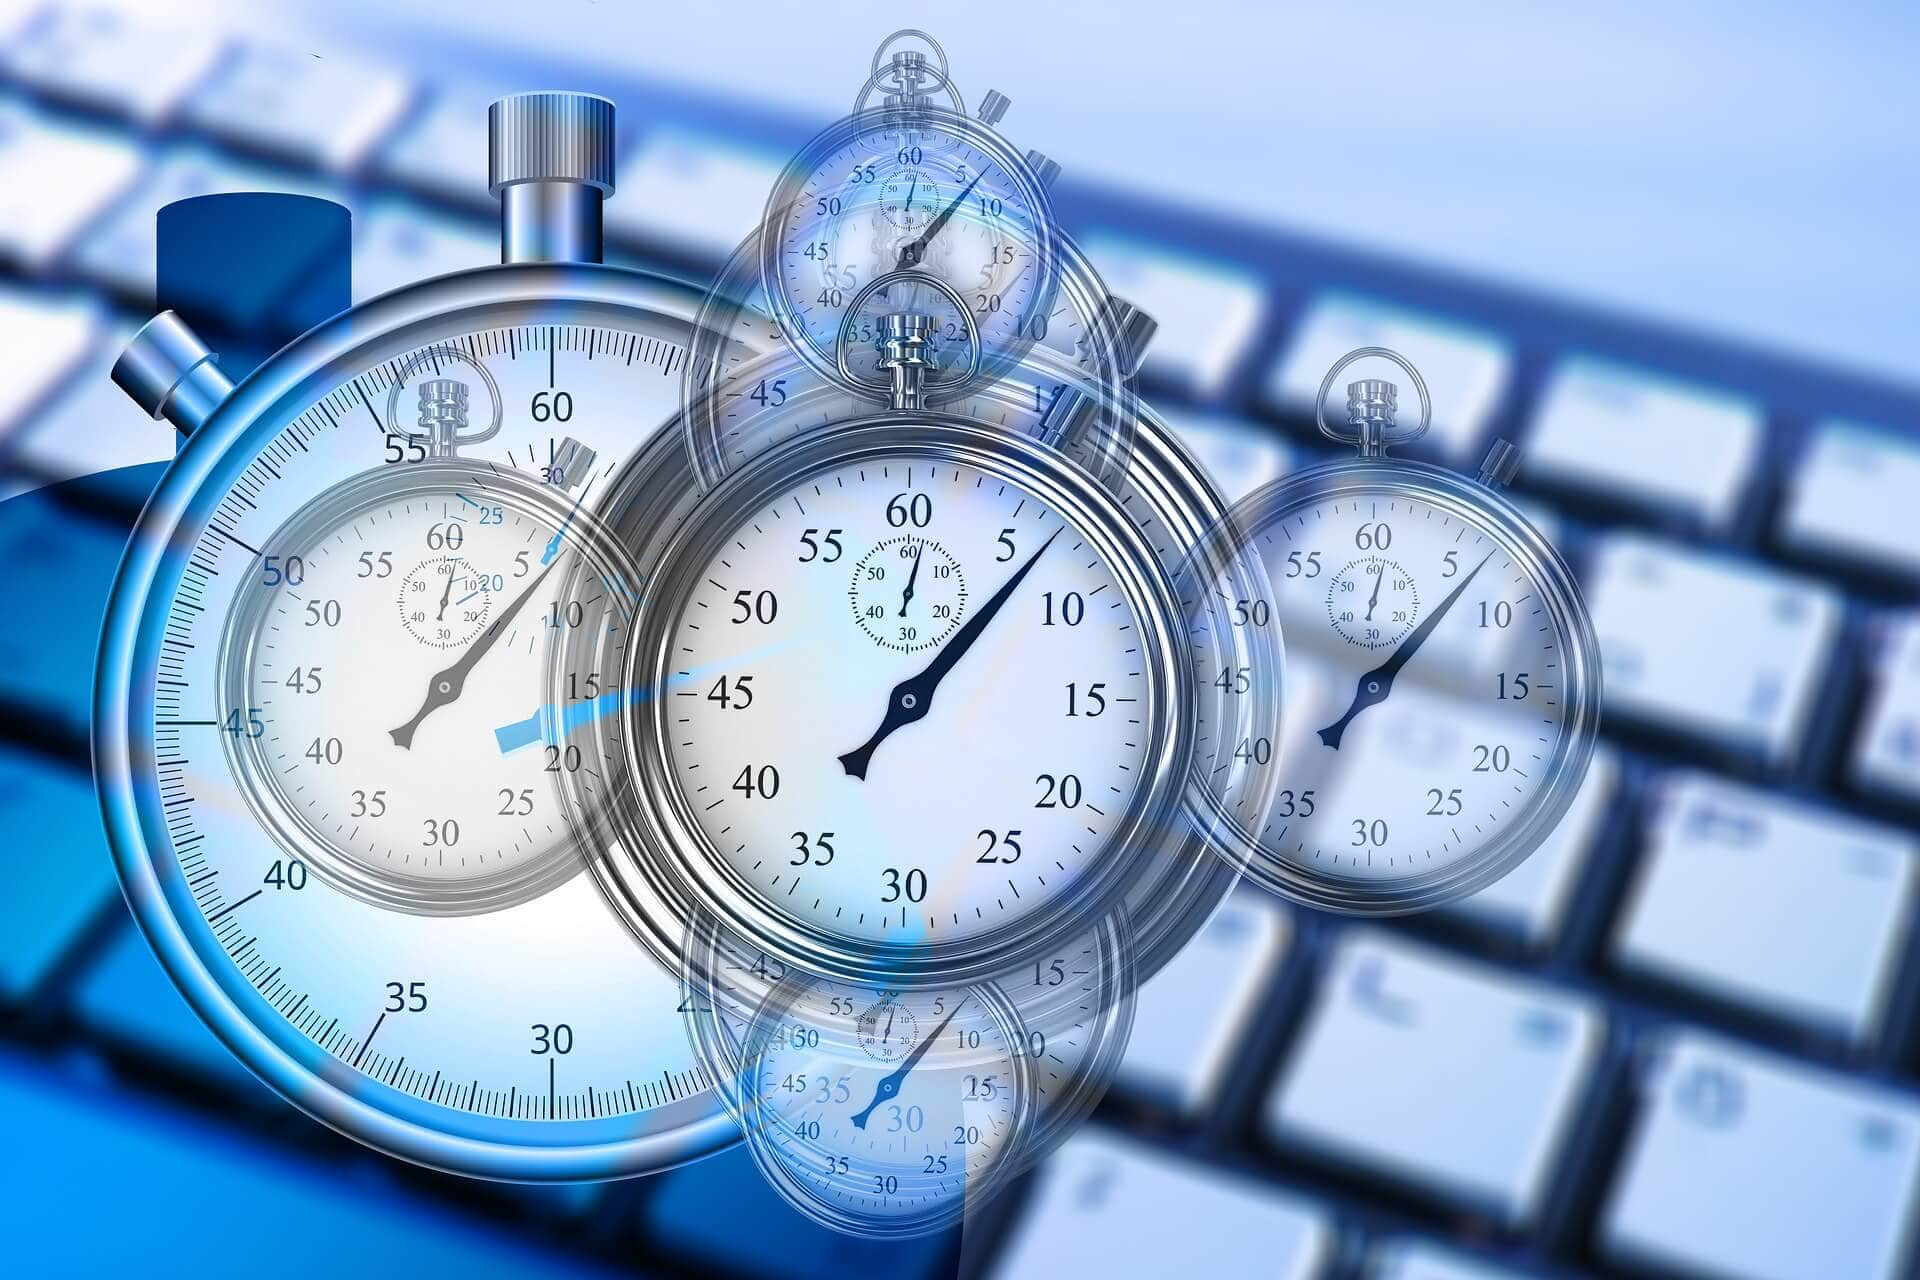 content/nl-nl/images/repository/isc/2020/how-to-speed-up-your-laptop.jpg